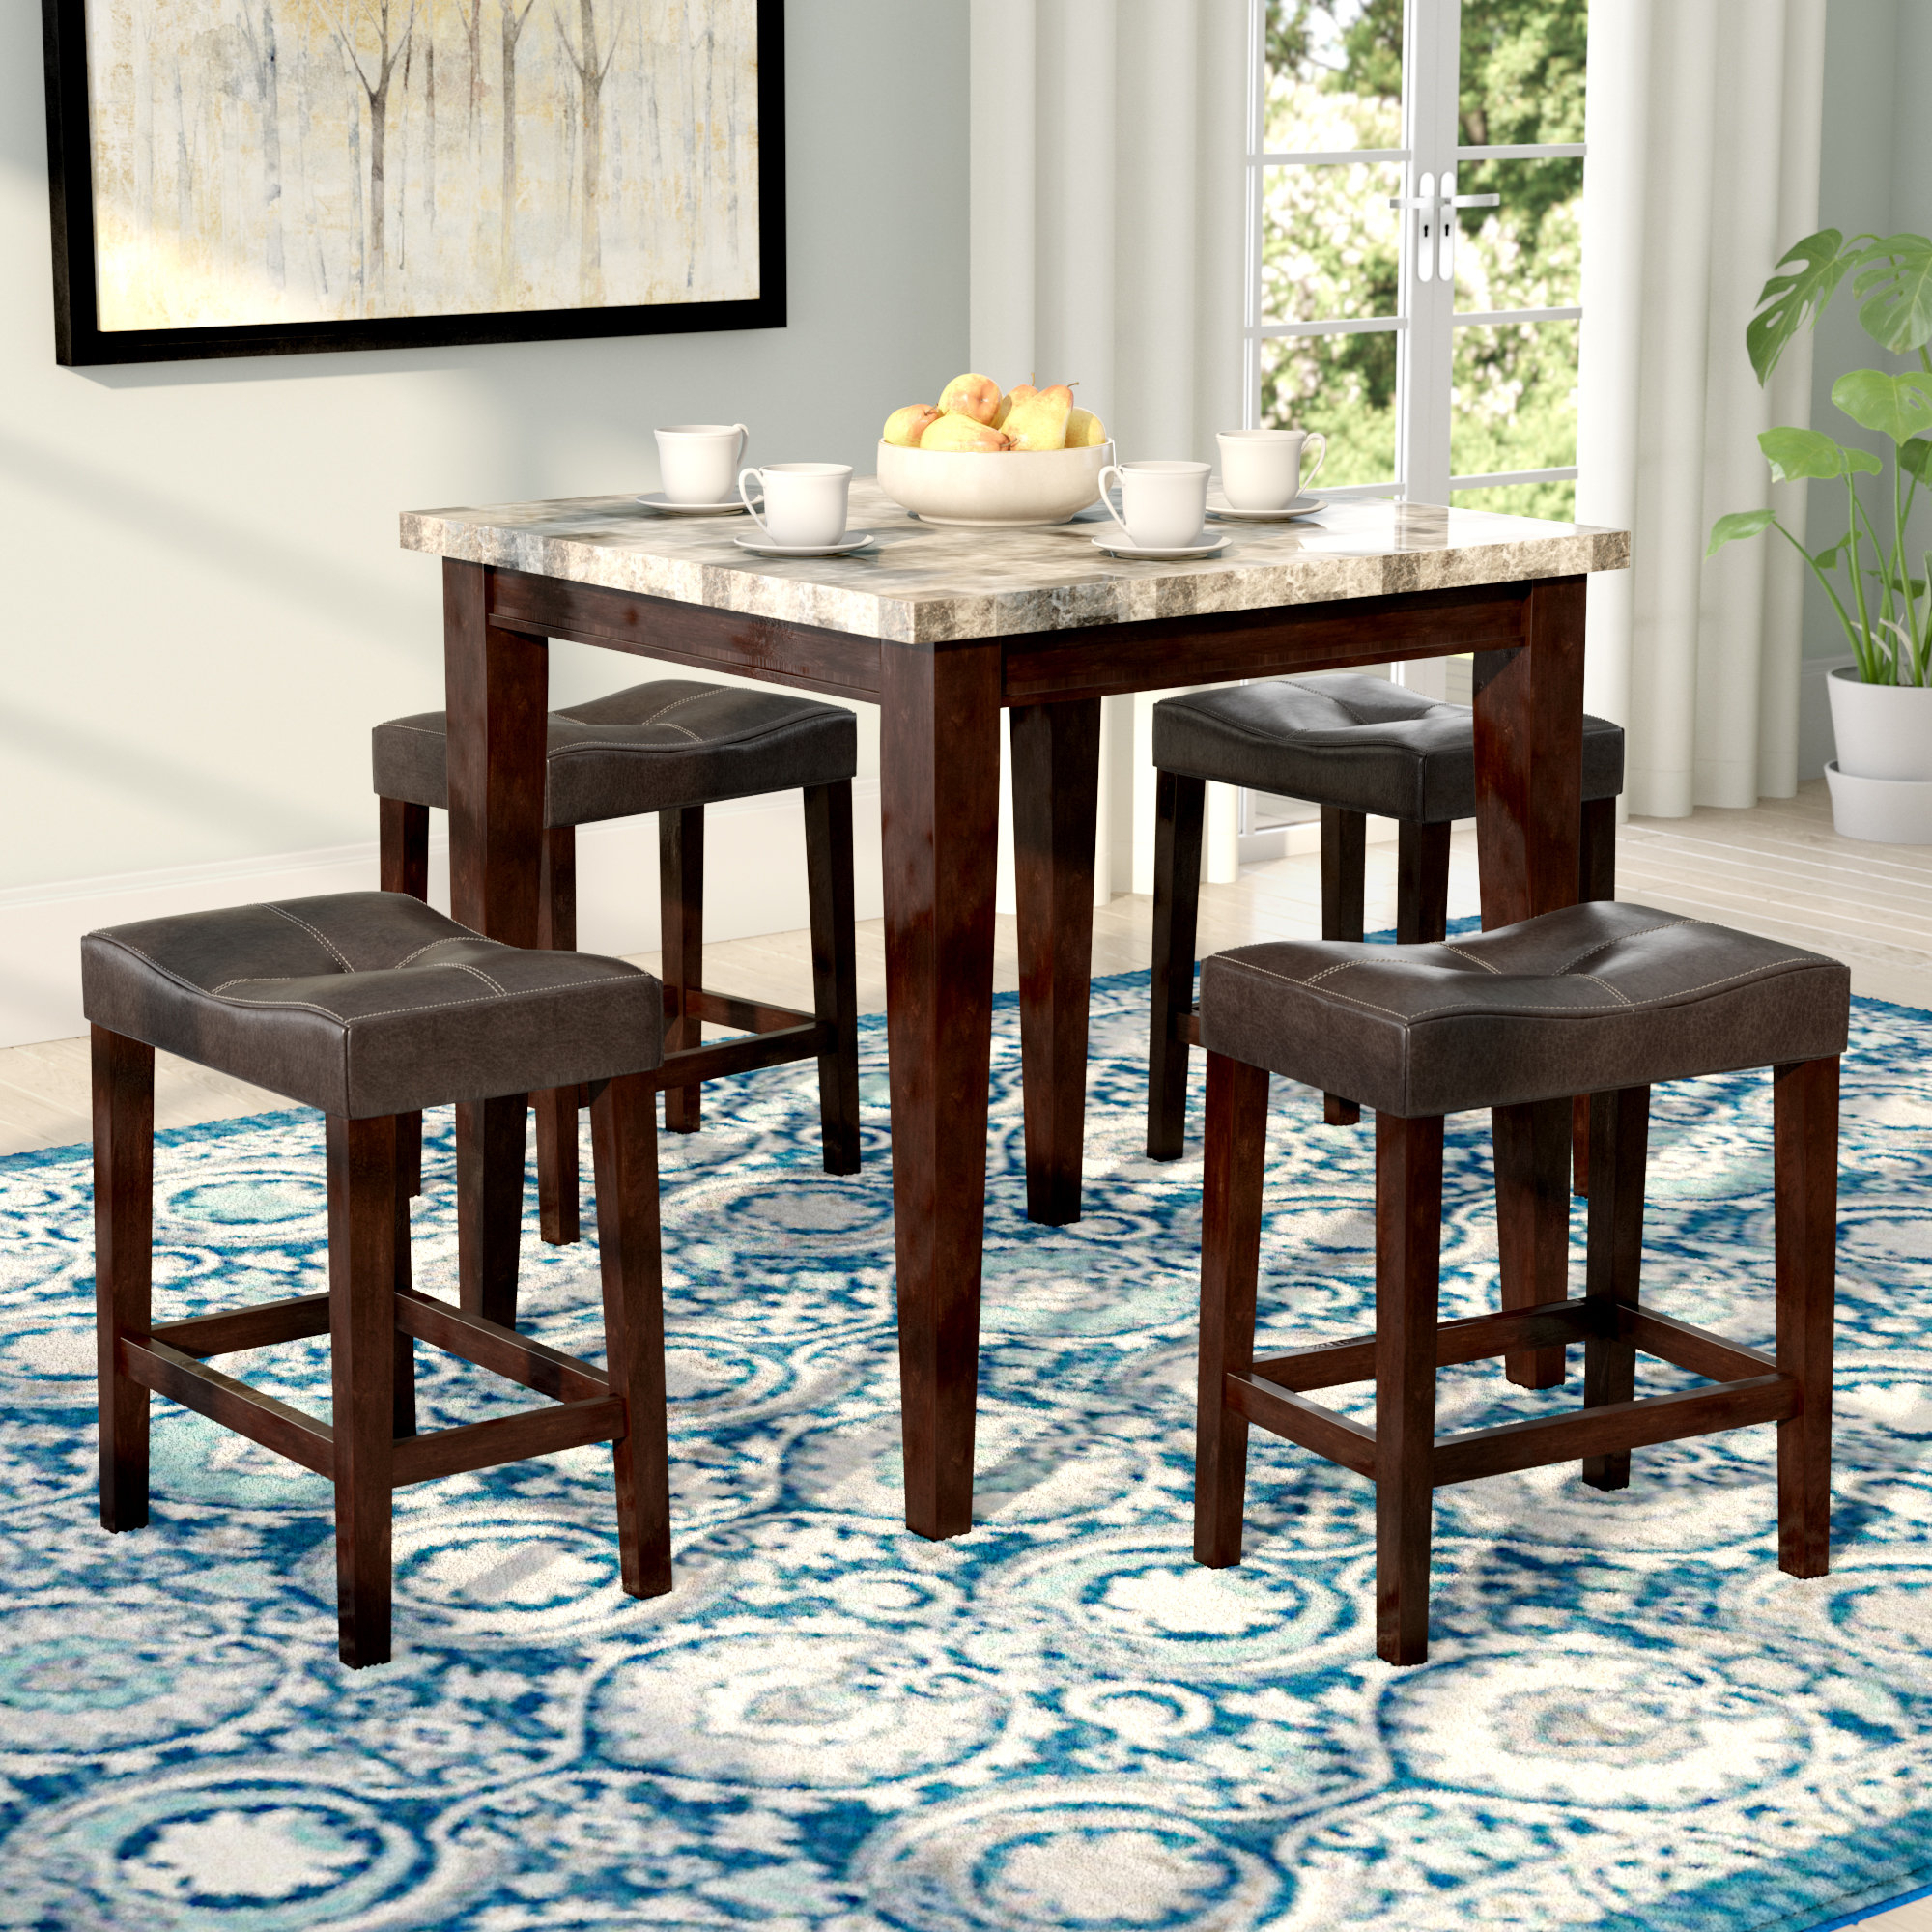 Miskell 5 Piece Dining Sets Pertaining To Most Current Andover Mills Aldama 5 Piece Pub Table Set & Reviews (View 13 of 25)